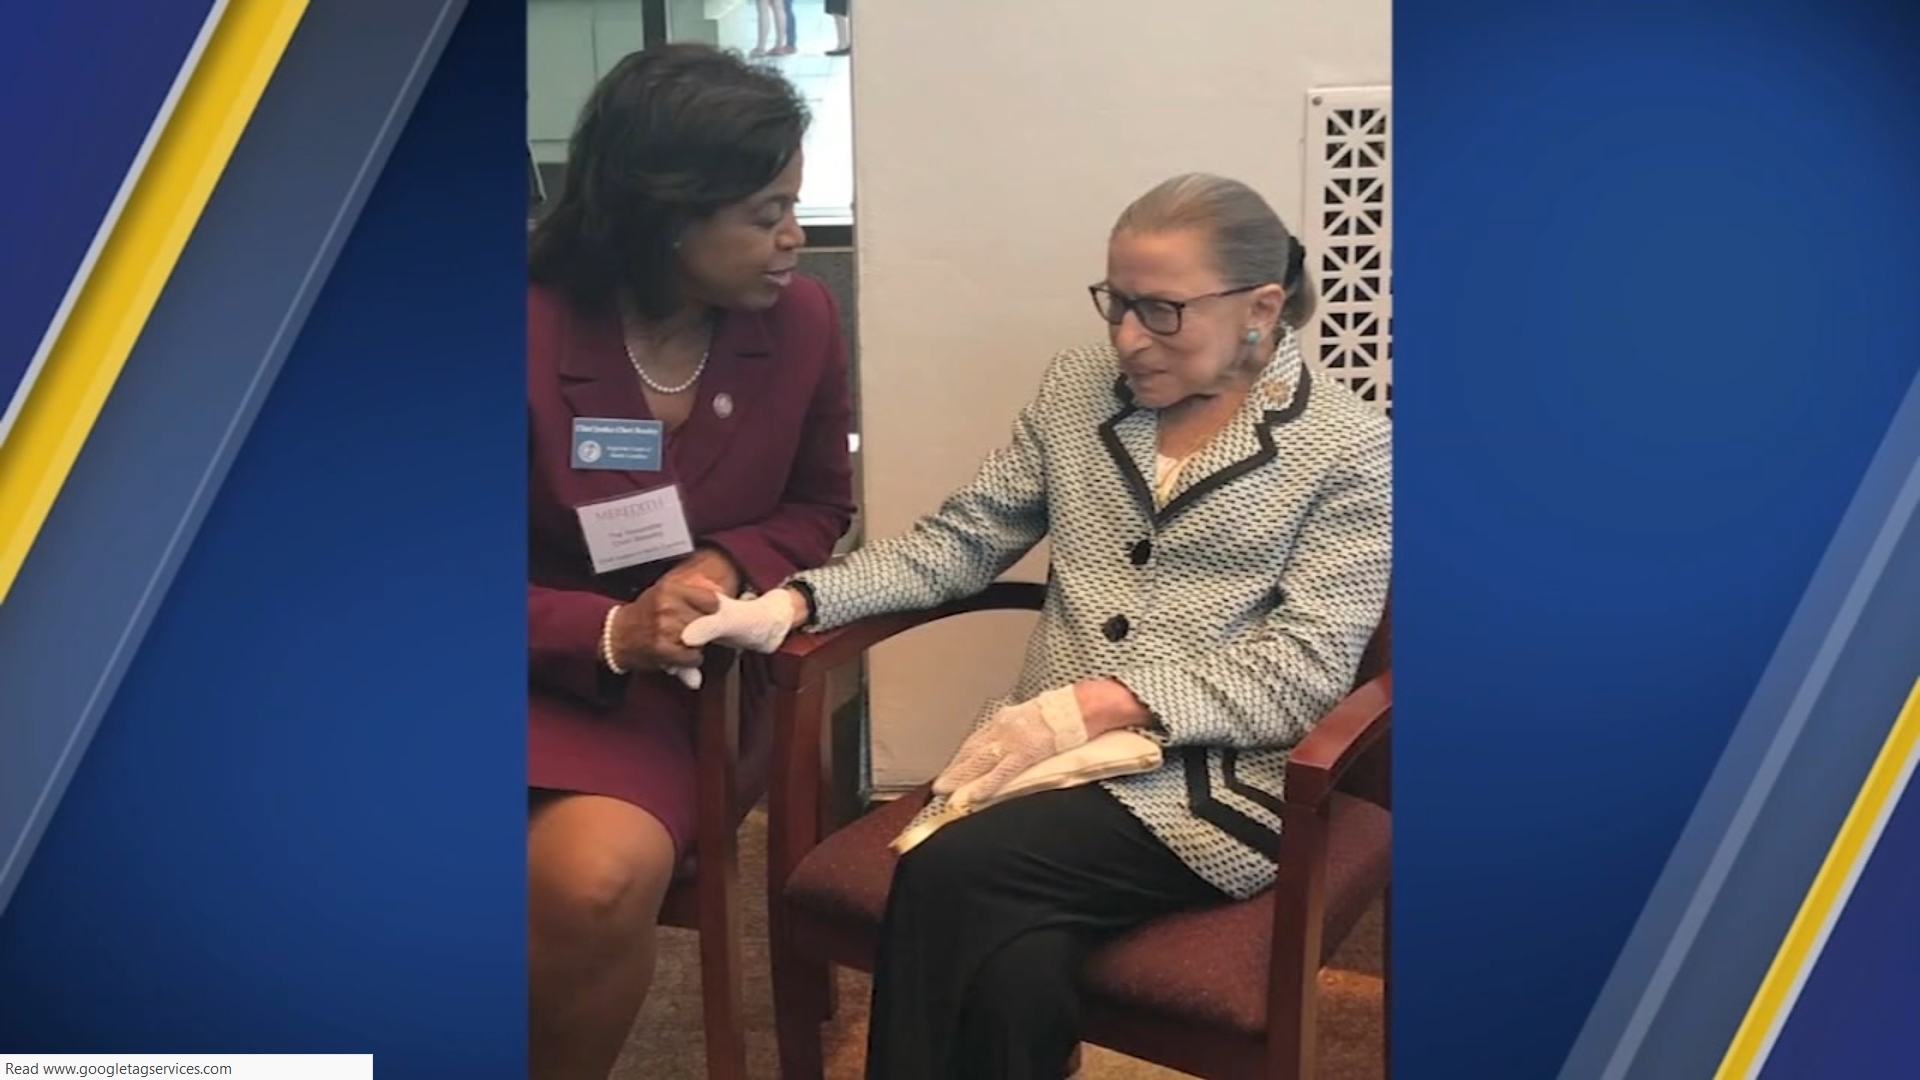 'Her personhood transcended the Supreme Court': NC Chief Justice reflects on Justice Ruth Bader Ginsburg's legacy